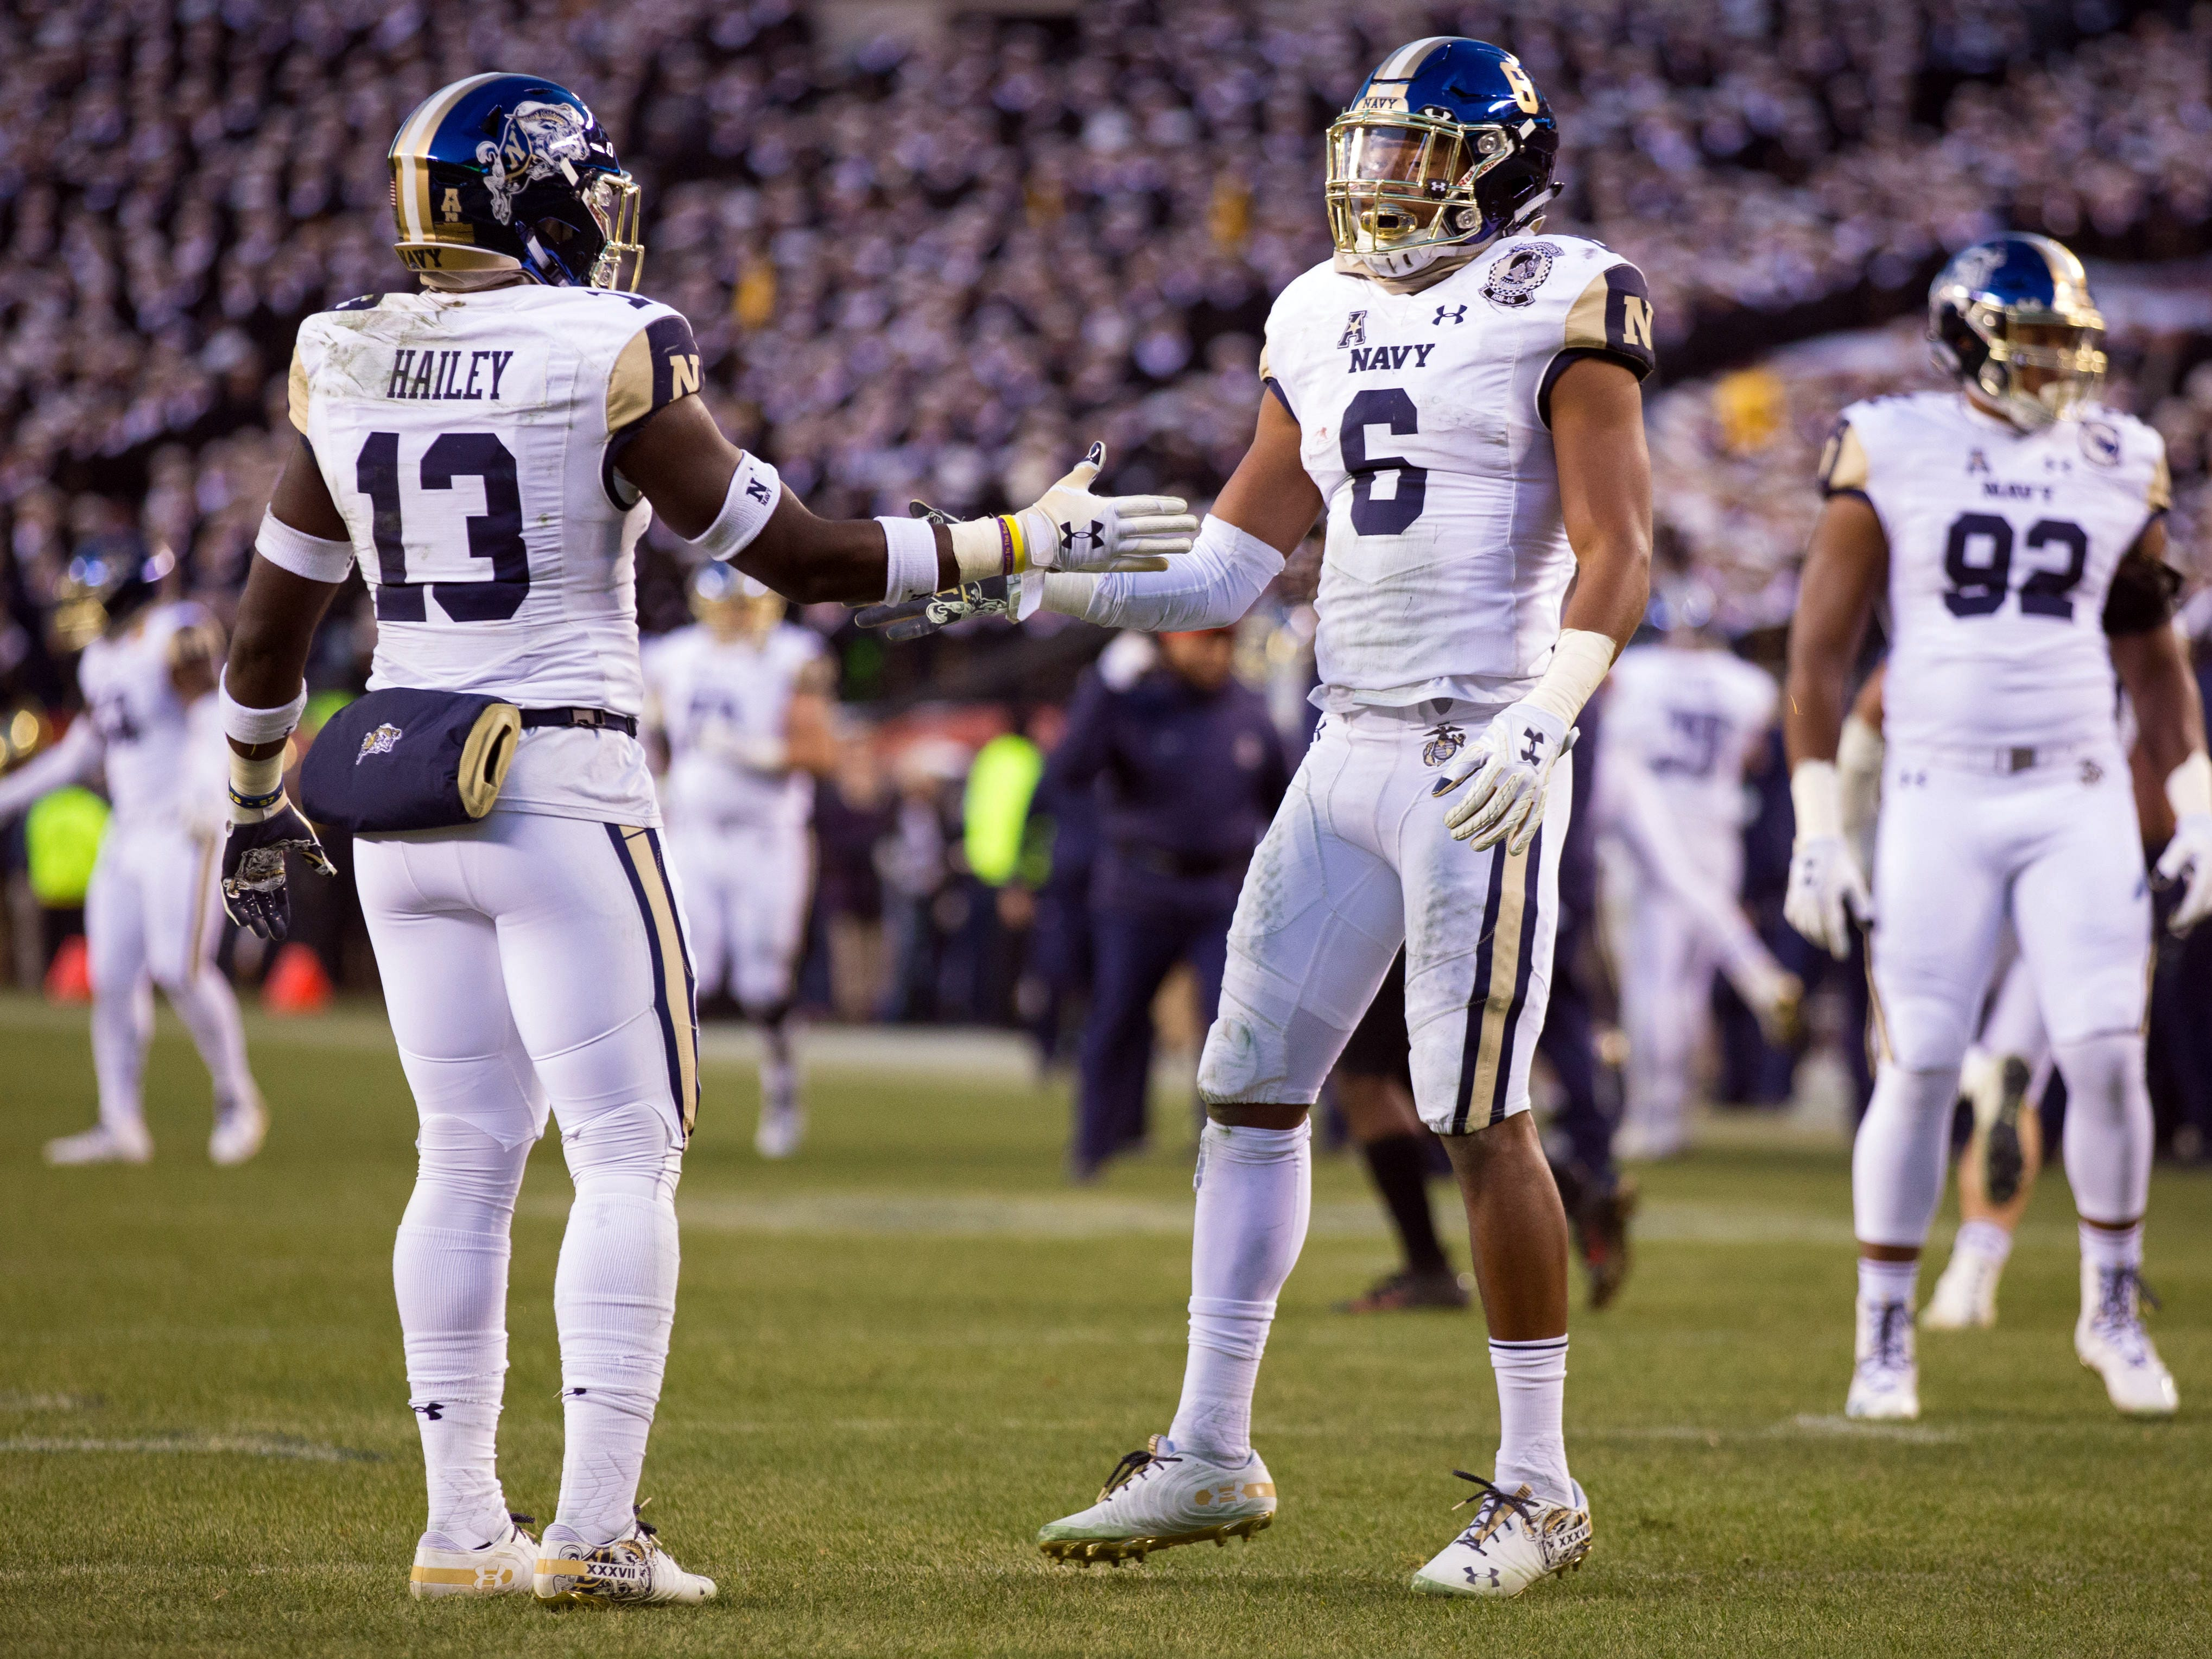 Navy Midshipmen safety Juan Hailey and safety Sean Williams react after a defensive stop during the second quarter.